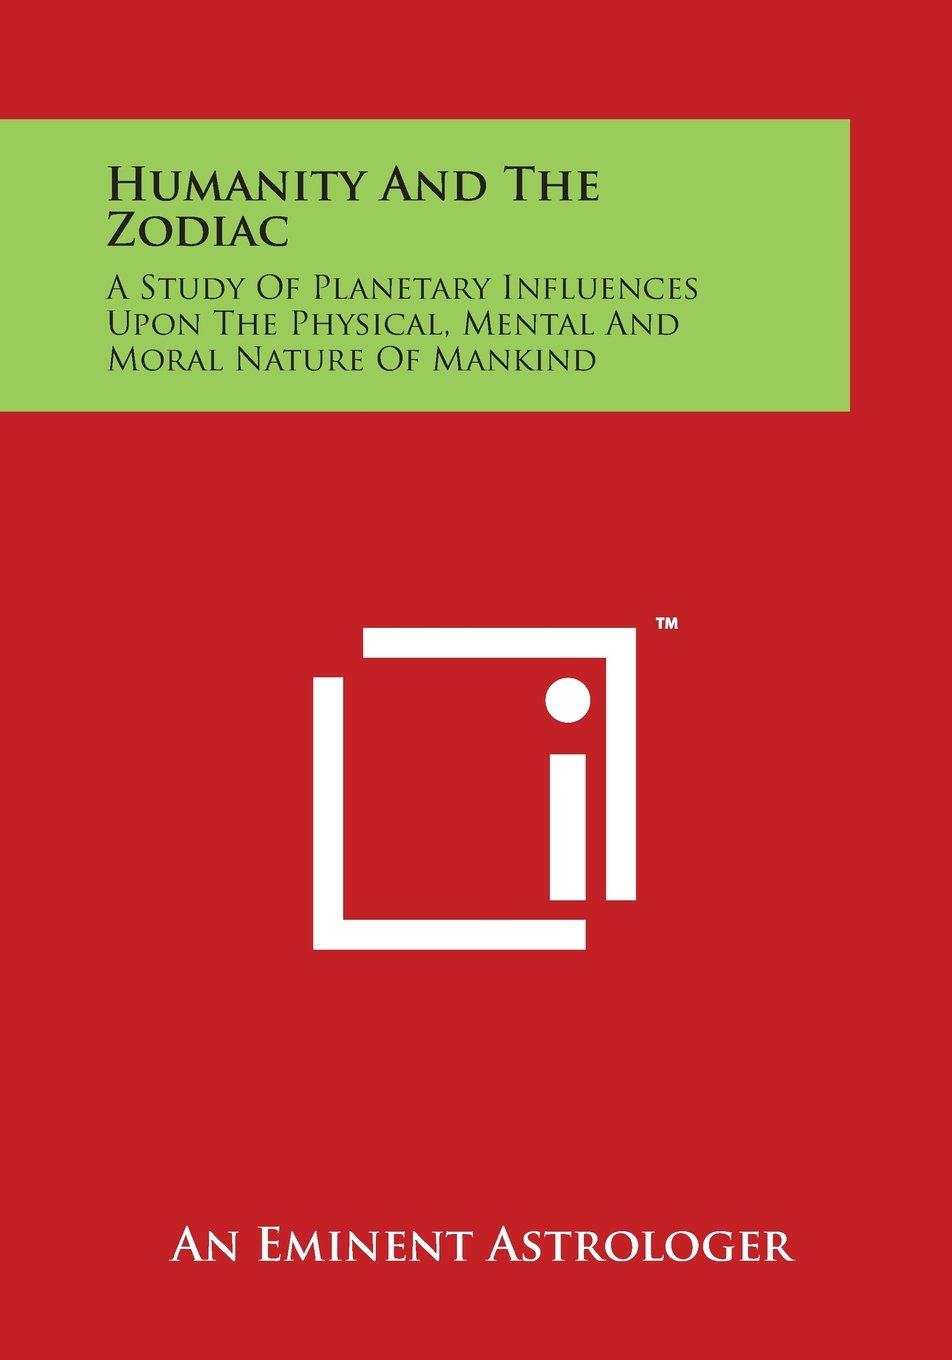 Read Online Humanity and the Zodiac: A Study of Planetary Influences Upon the Physical, Mental and Moral Nature of Mankind PDF